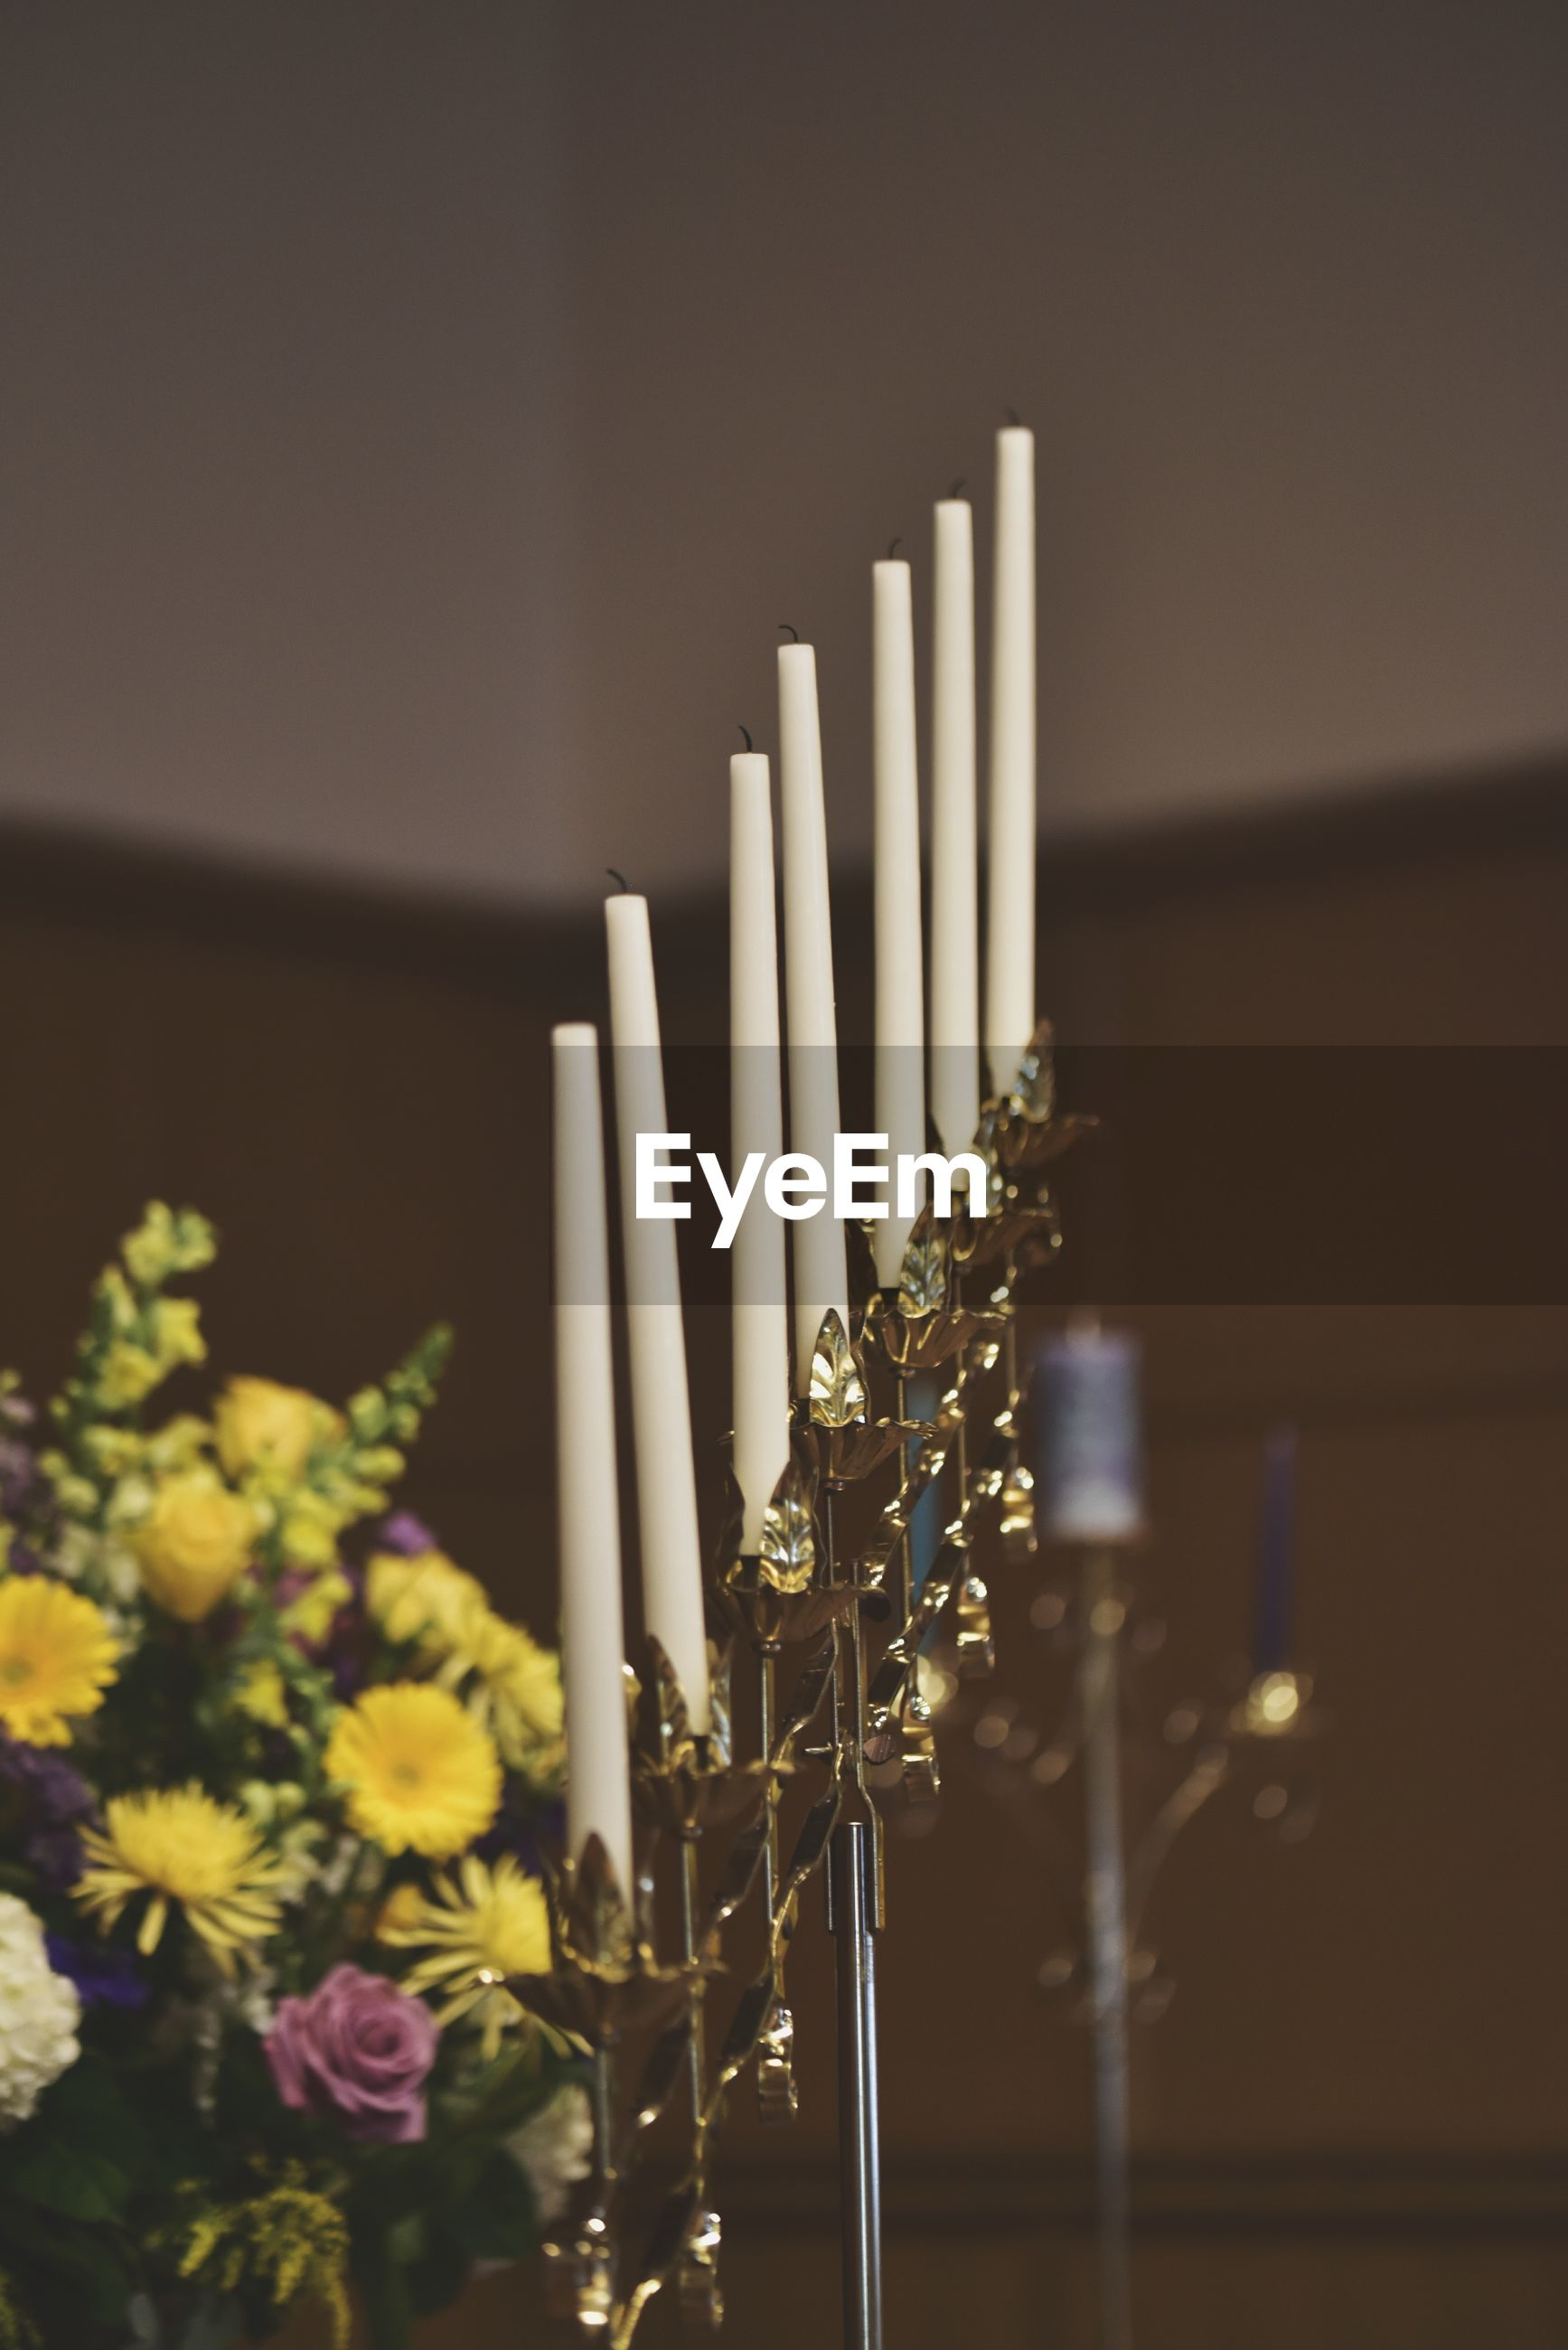 Candles on stand on wedding day